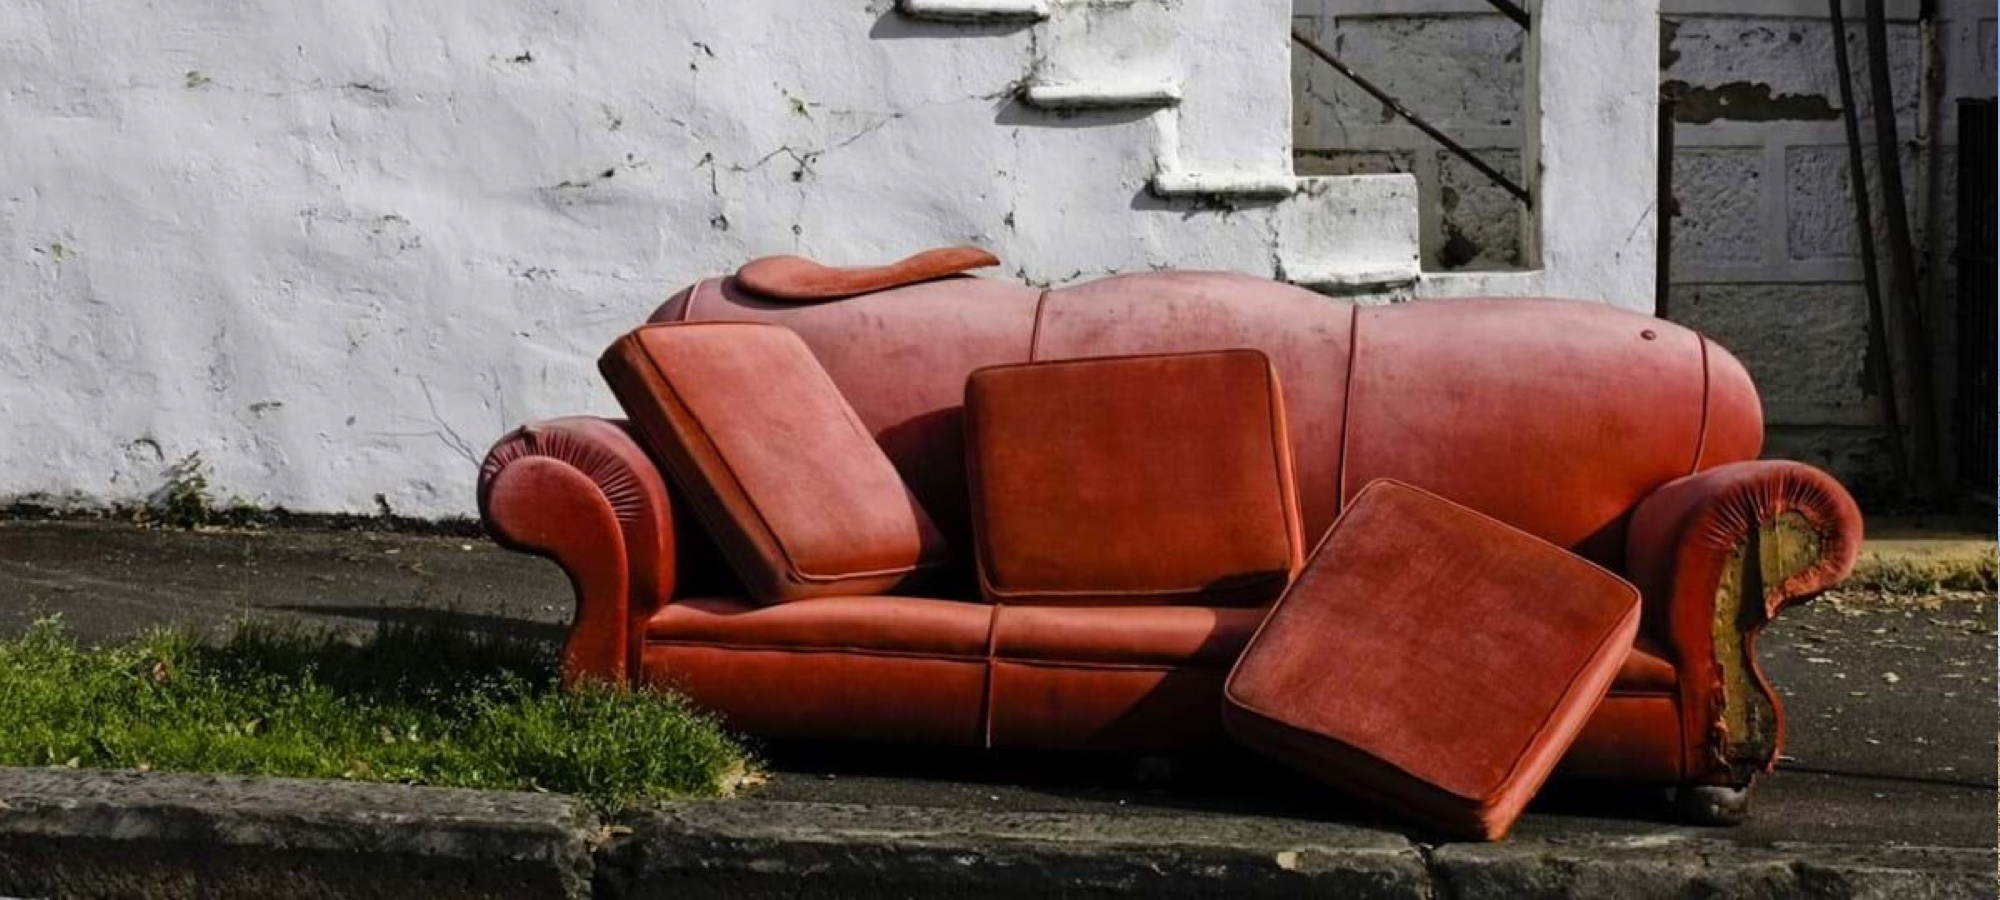 No more curbside sofas.